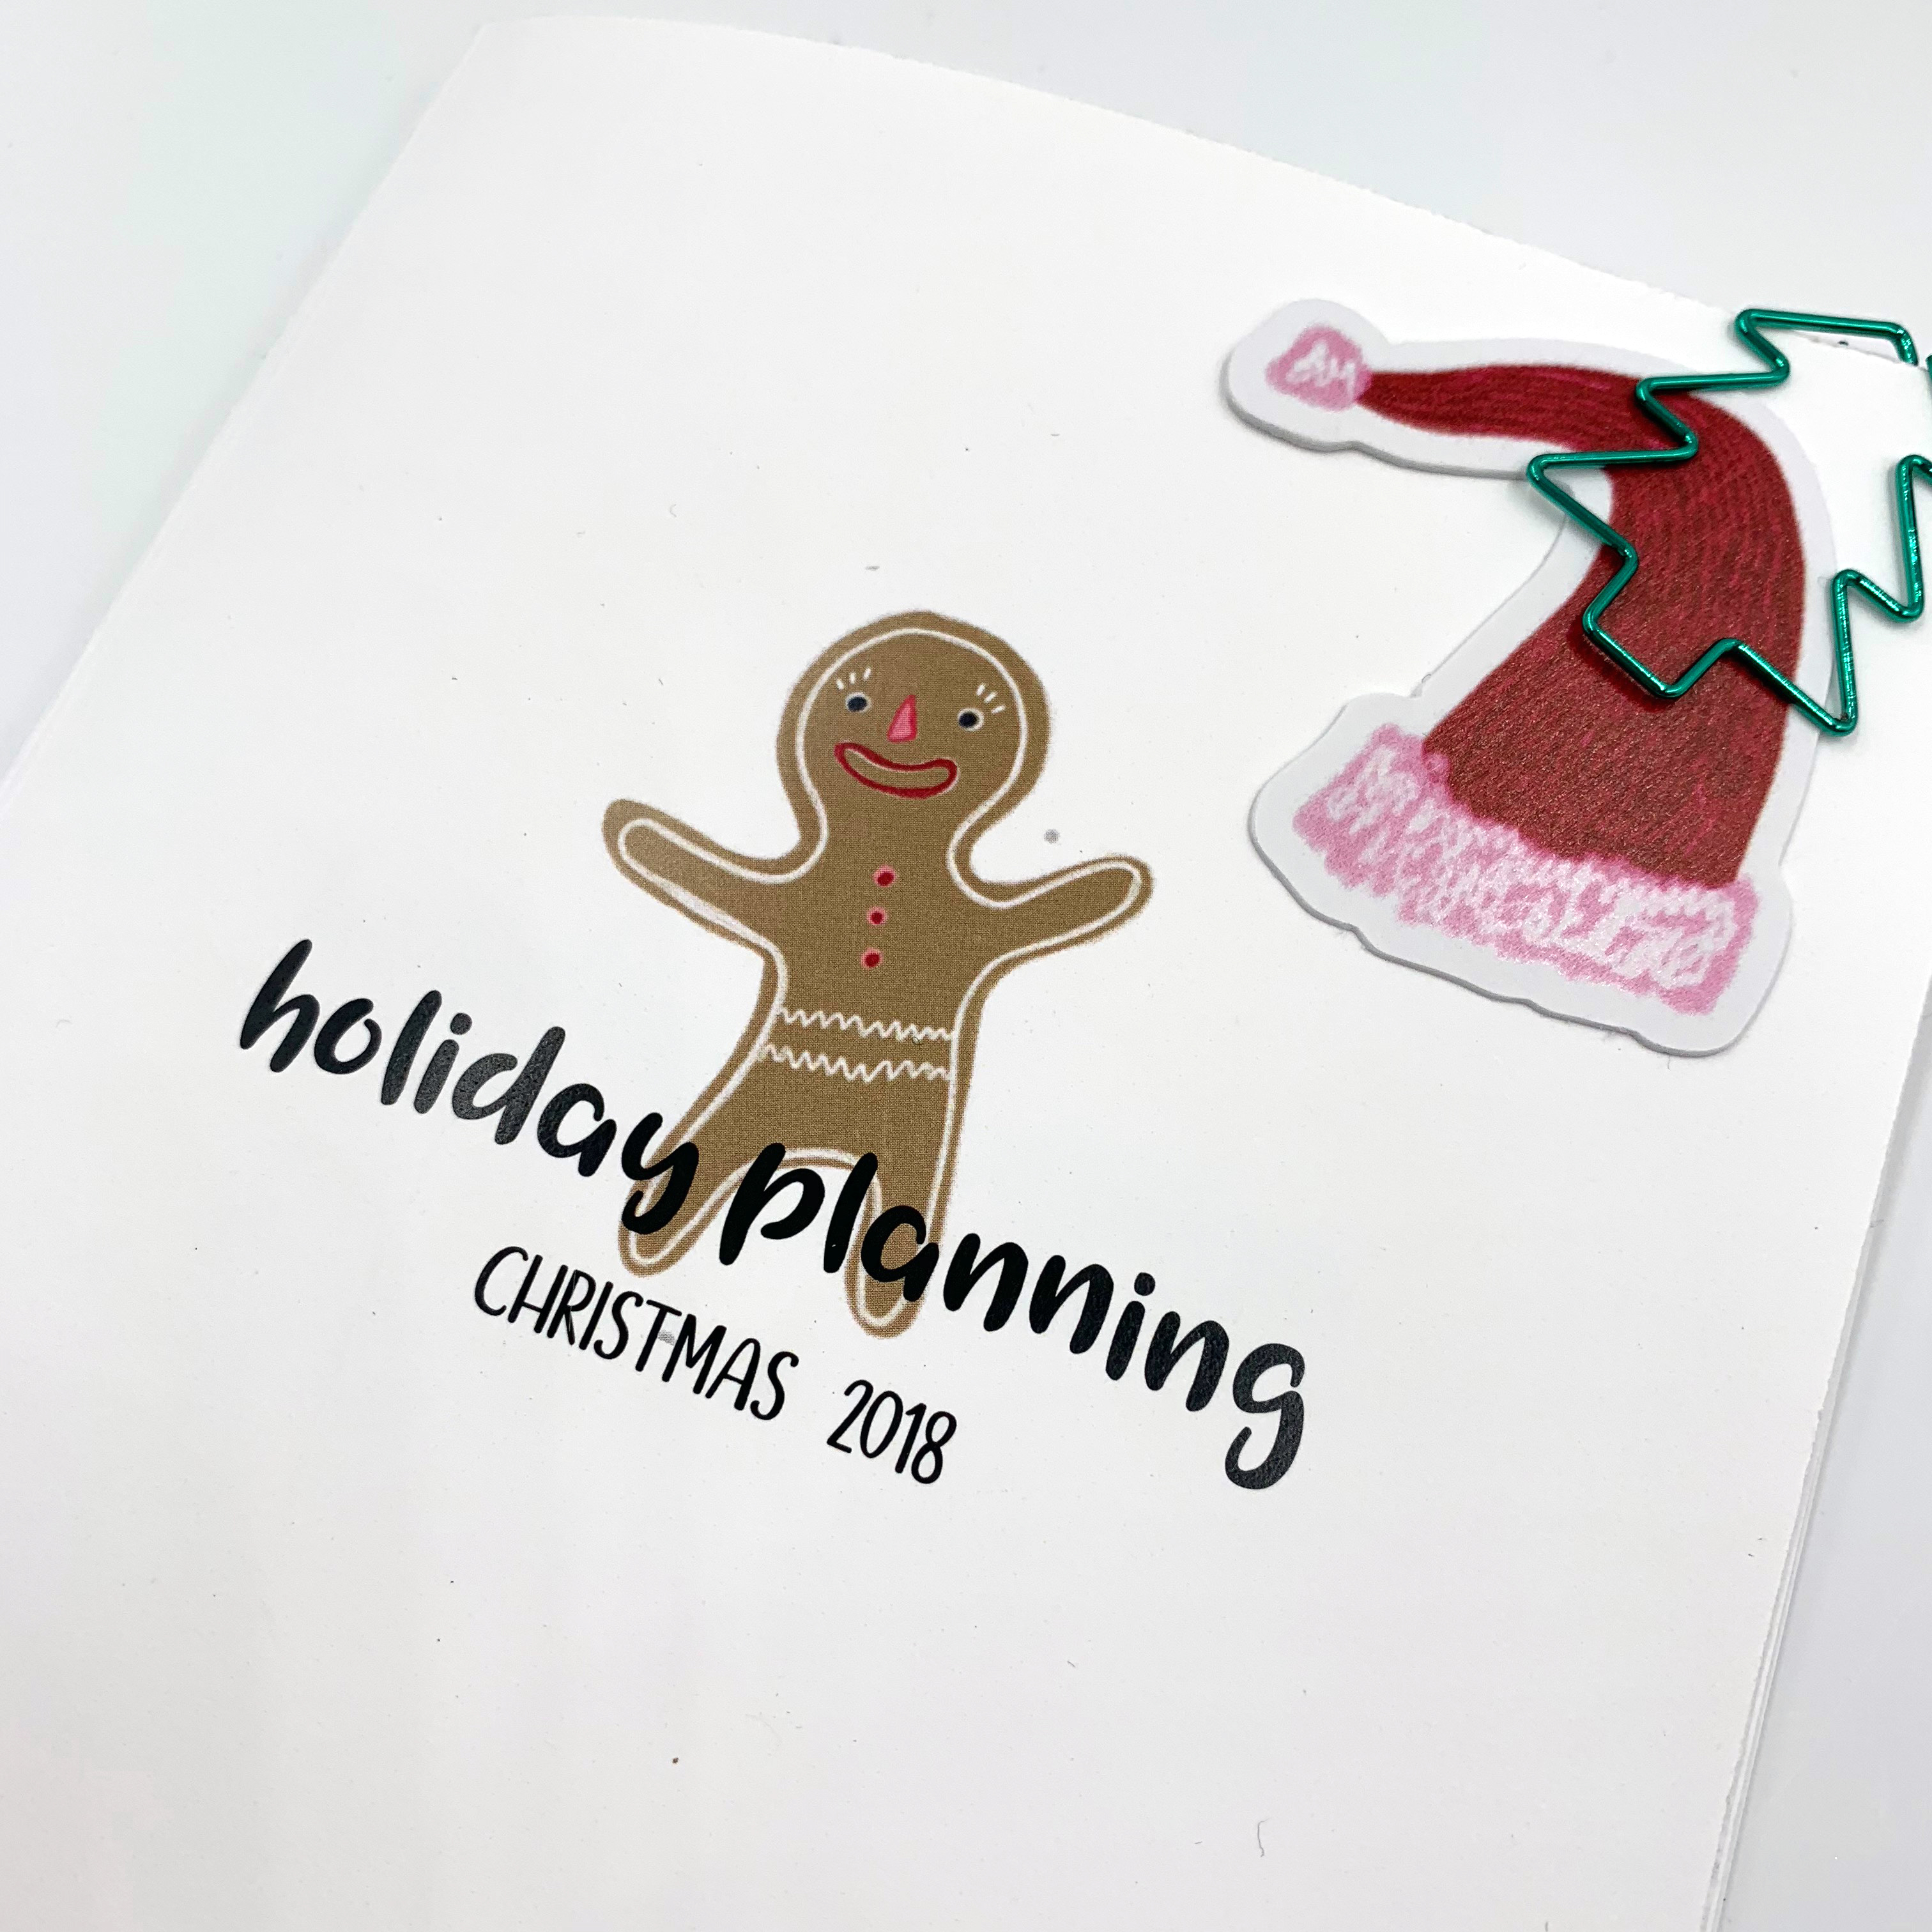 12 days of Christmas at the1407 – the1407planners